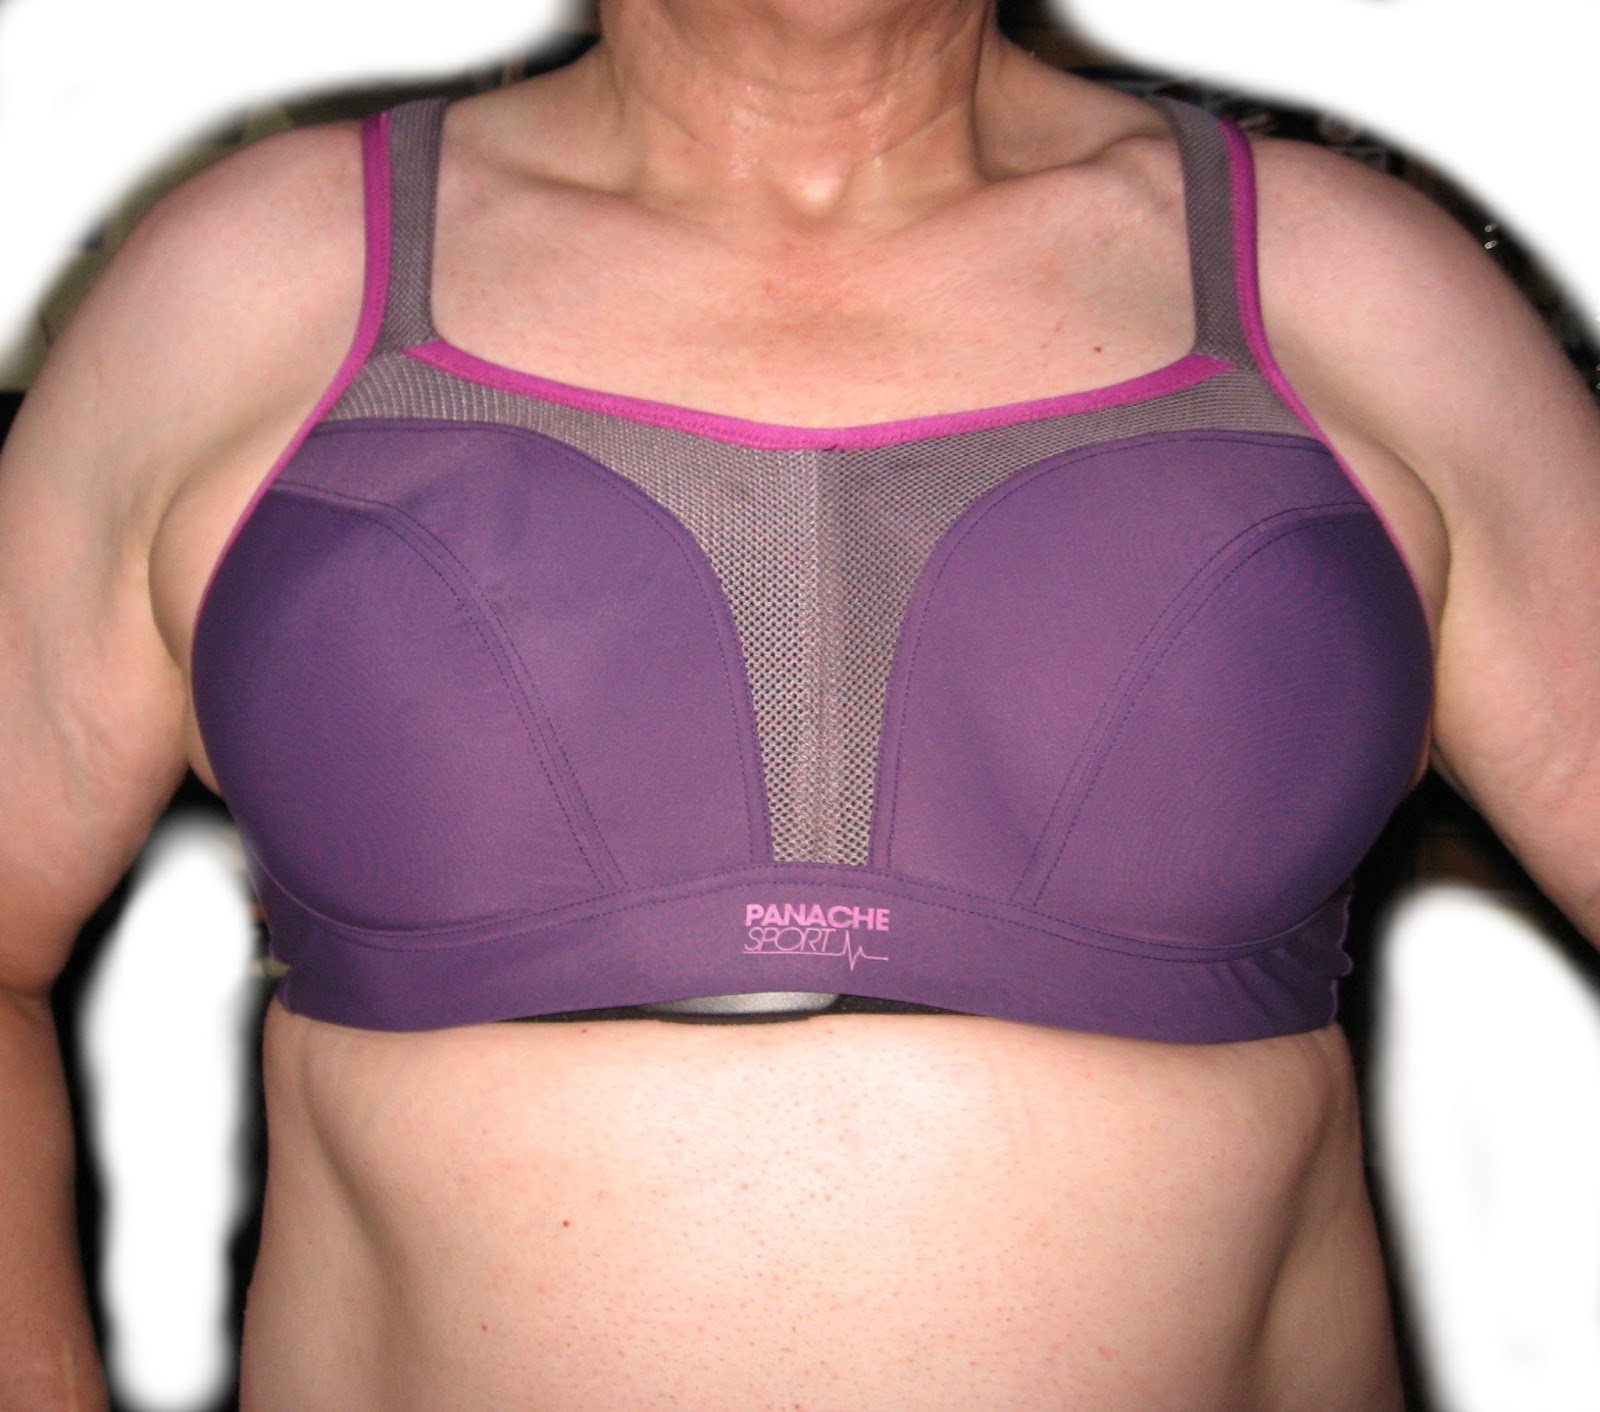 from Anthony men wearing bras in the summer unnoticed